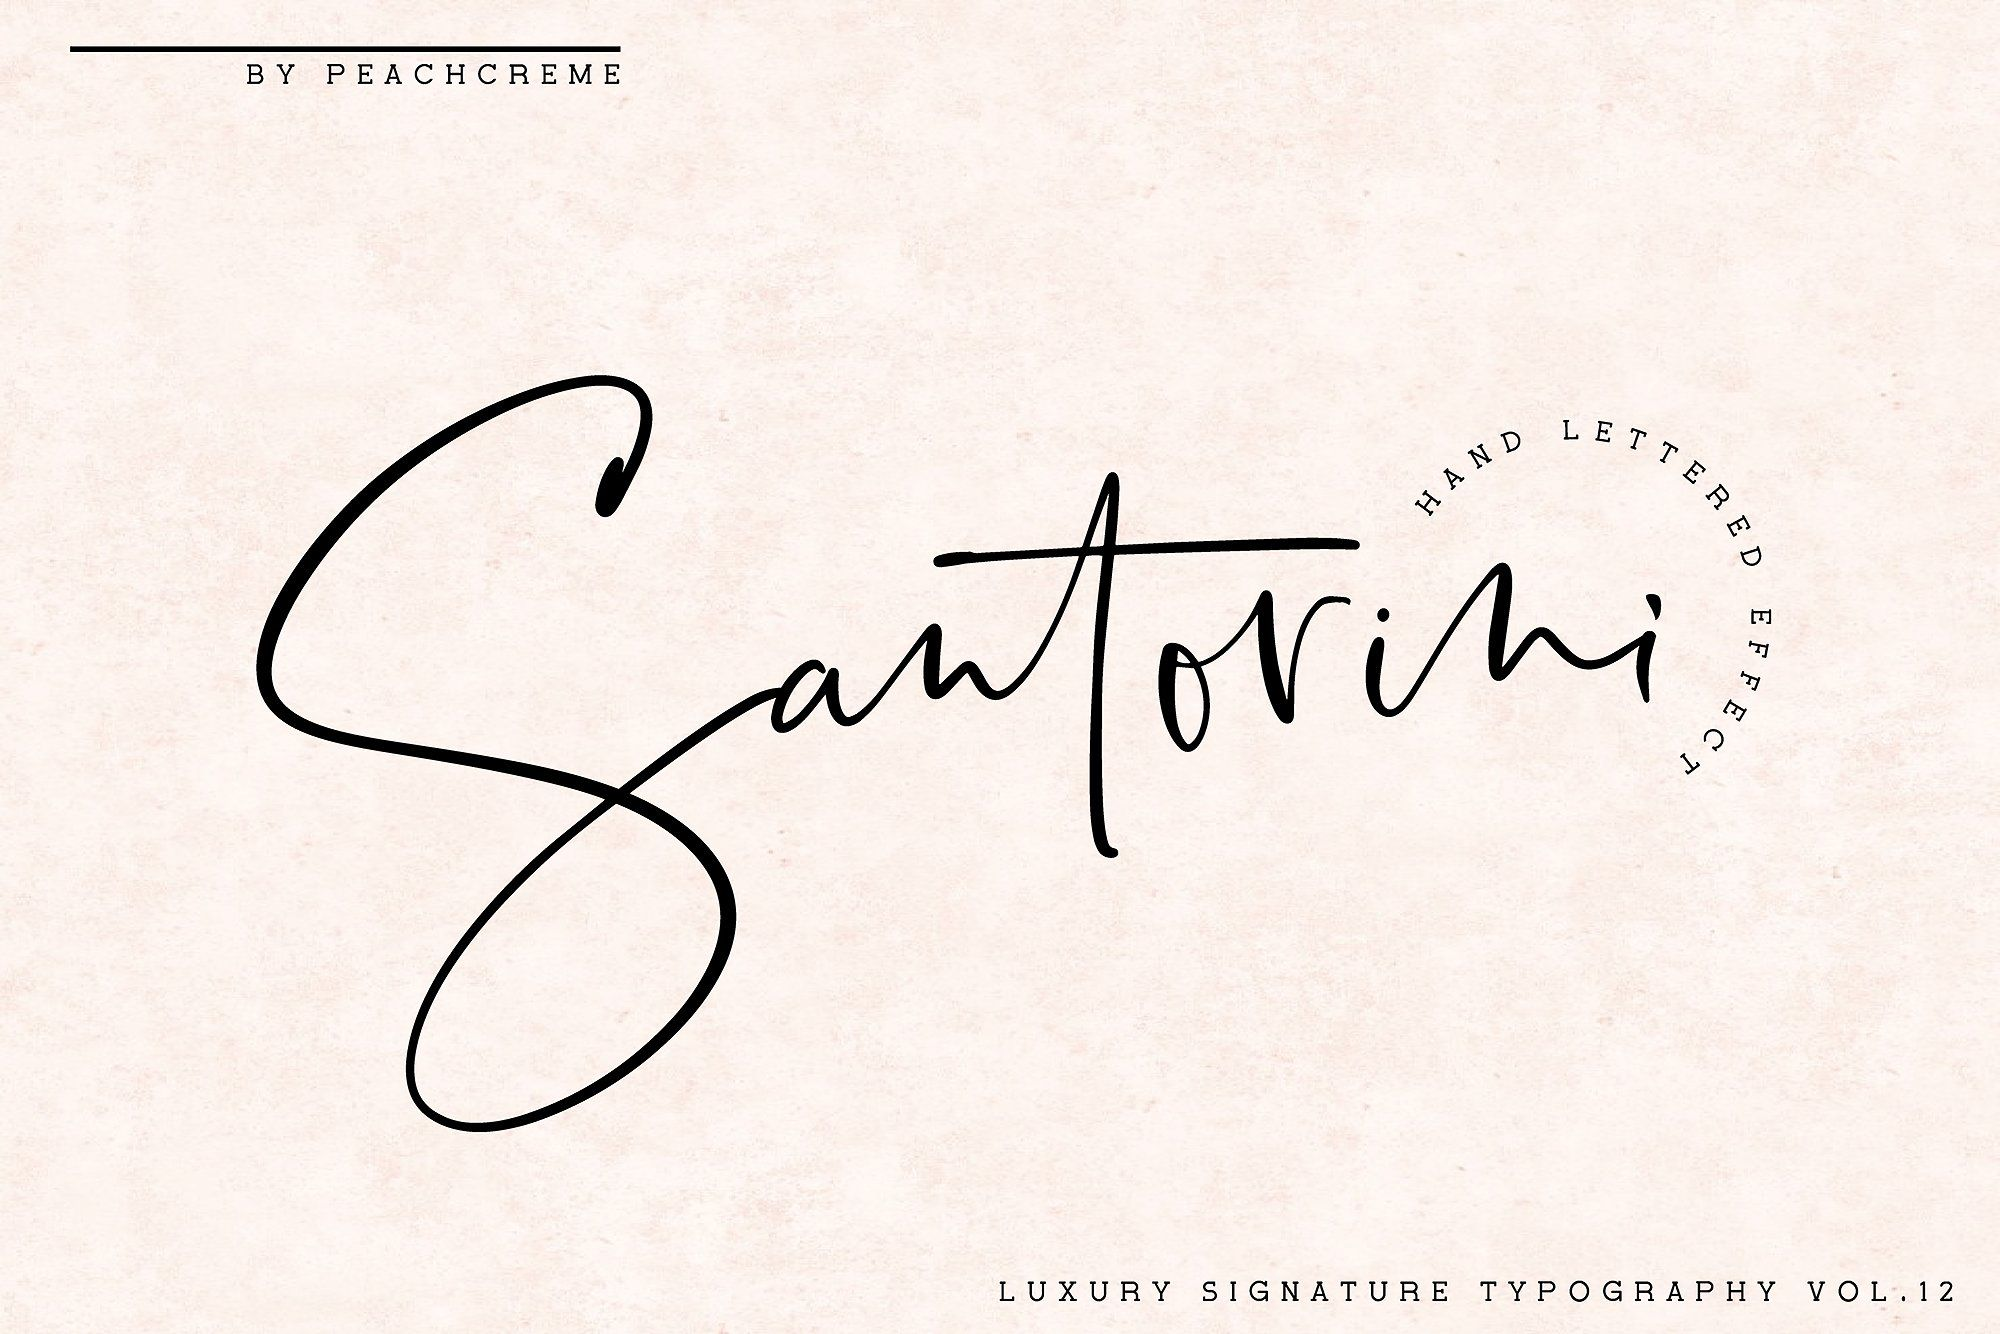 Santorini Luxury Signature Font - Check out my list with 10 of the BEST Script Fonts from Creative Market for branding your projects in 2019. It is never too late to add charm to your blog! Art, Fonts and Calligraphy, Typography, Handwritten Fonts, Script Fonts, Modern Fonts, Cursive Fonts, Design Fonts, Calligraphy Fonts, Simple Fonts, Elegant Fonts, Professional Fonts, Beautiful Fonts